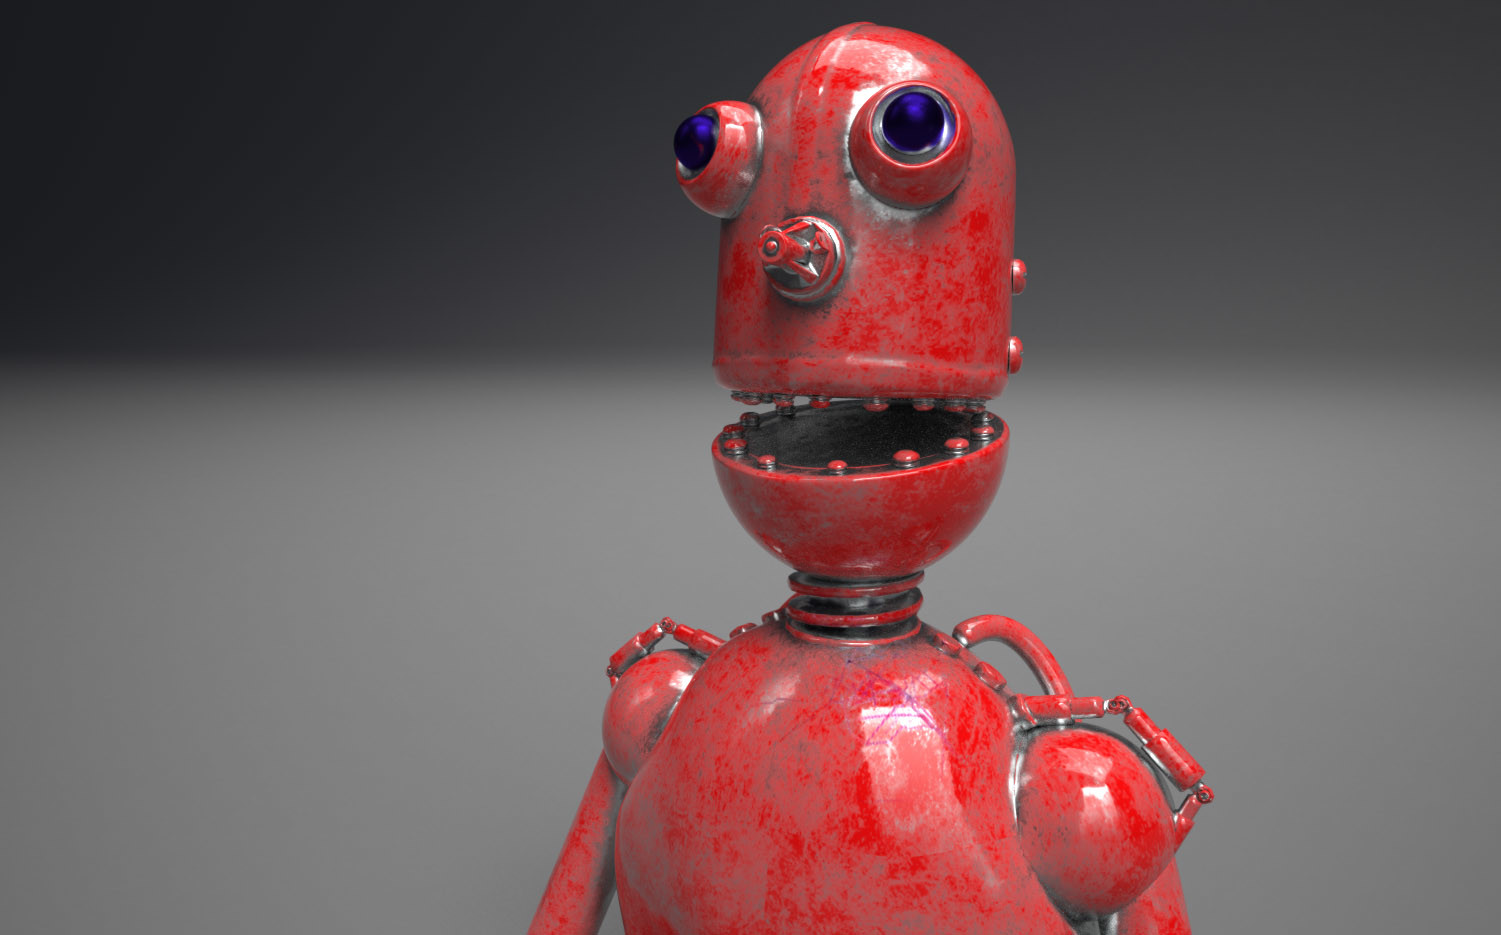 Barry mccarthy robot render